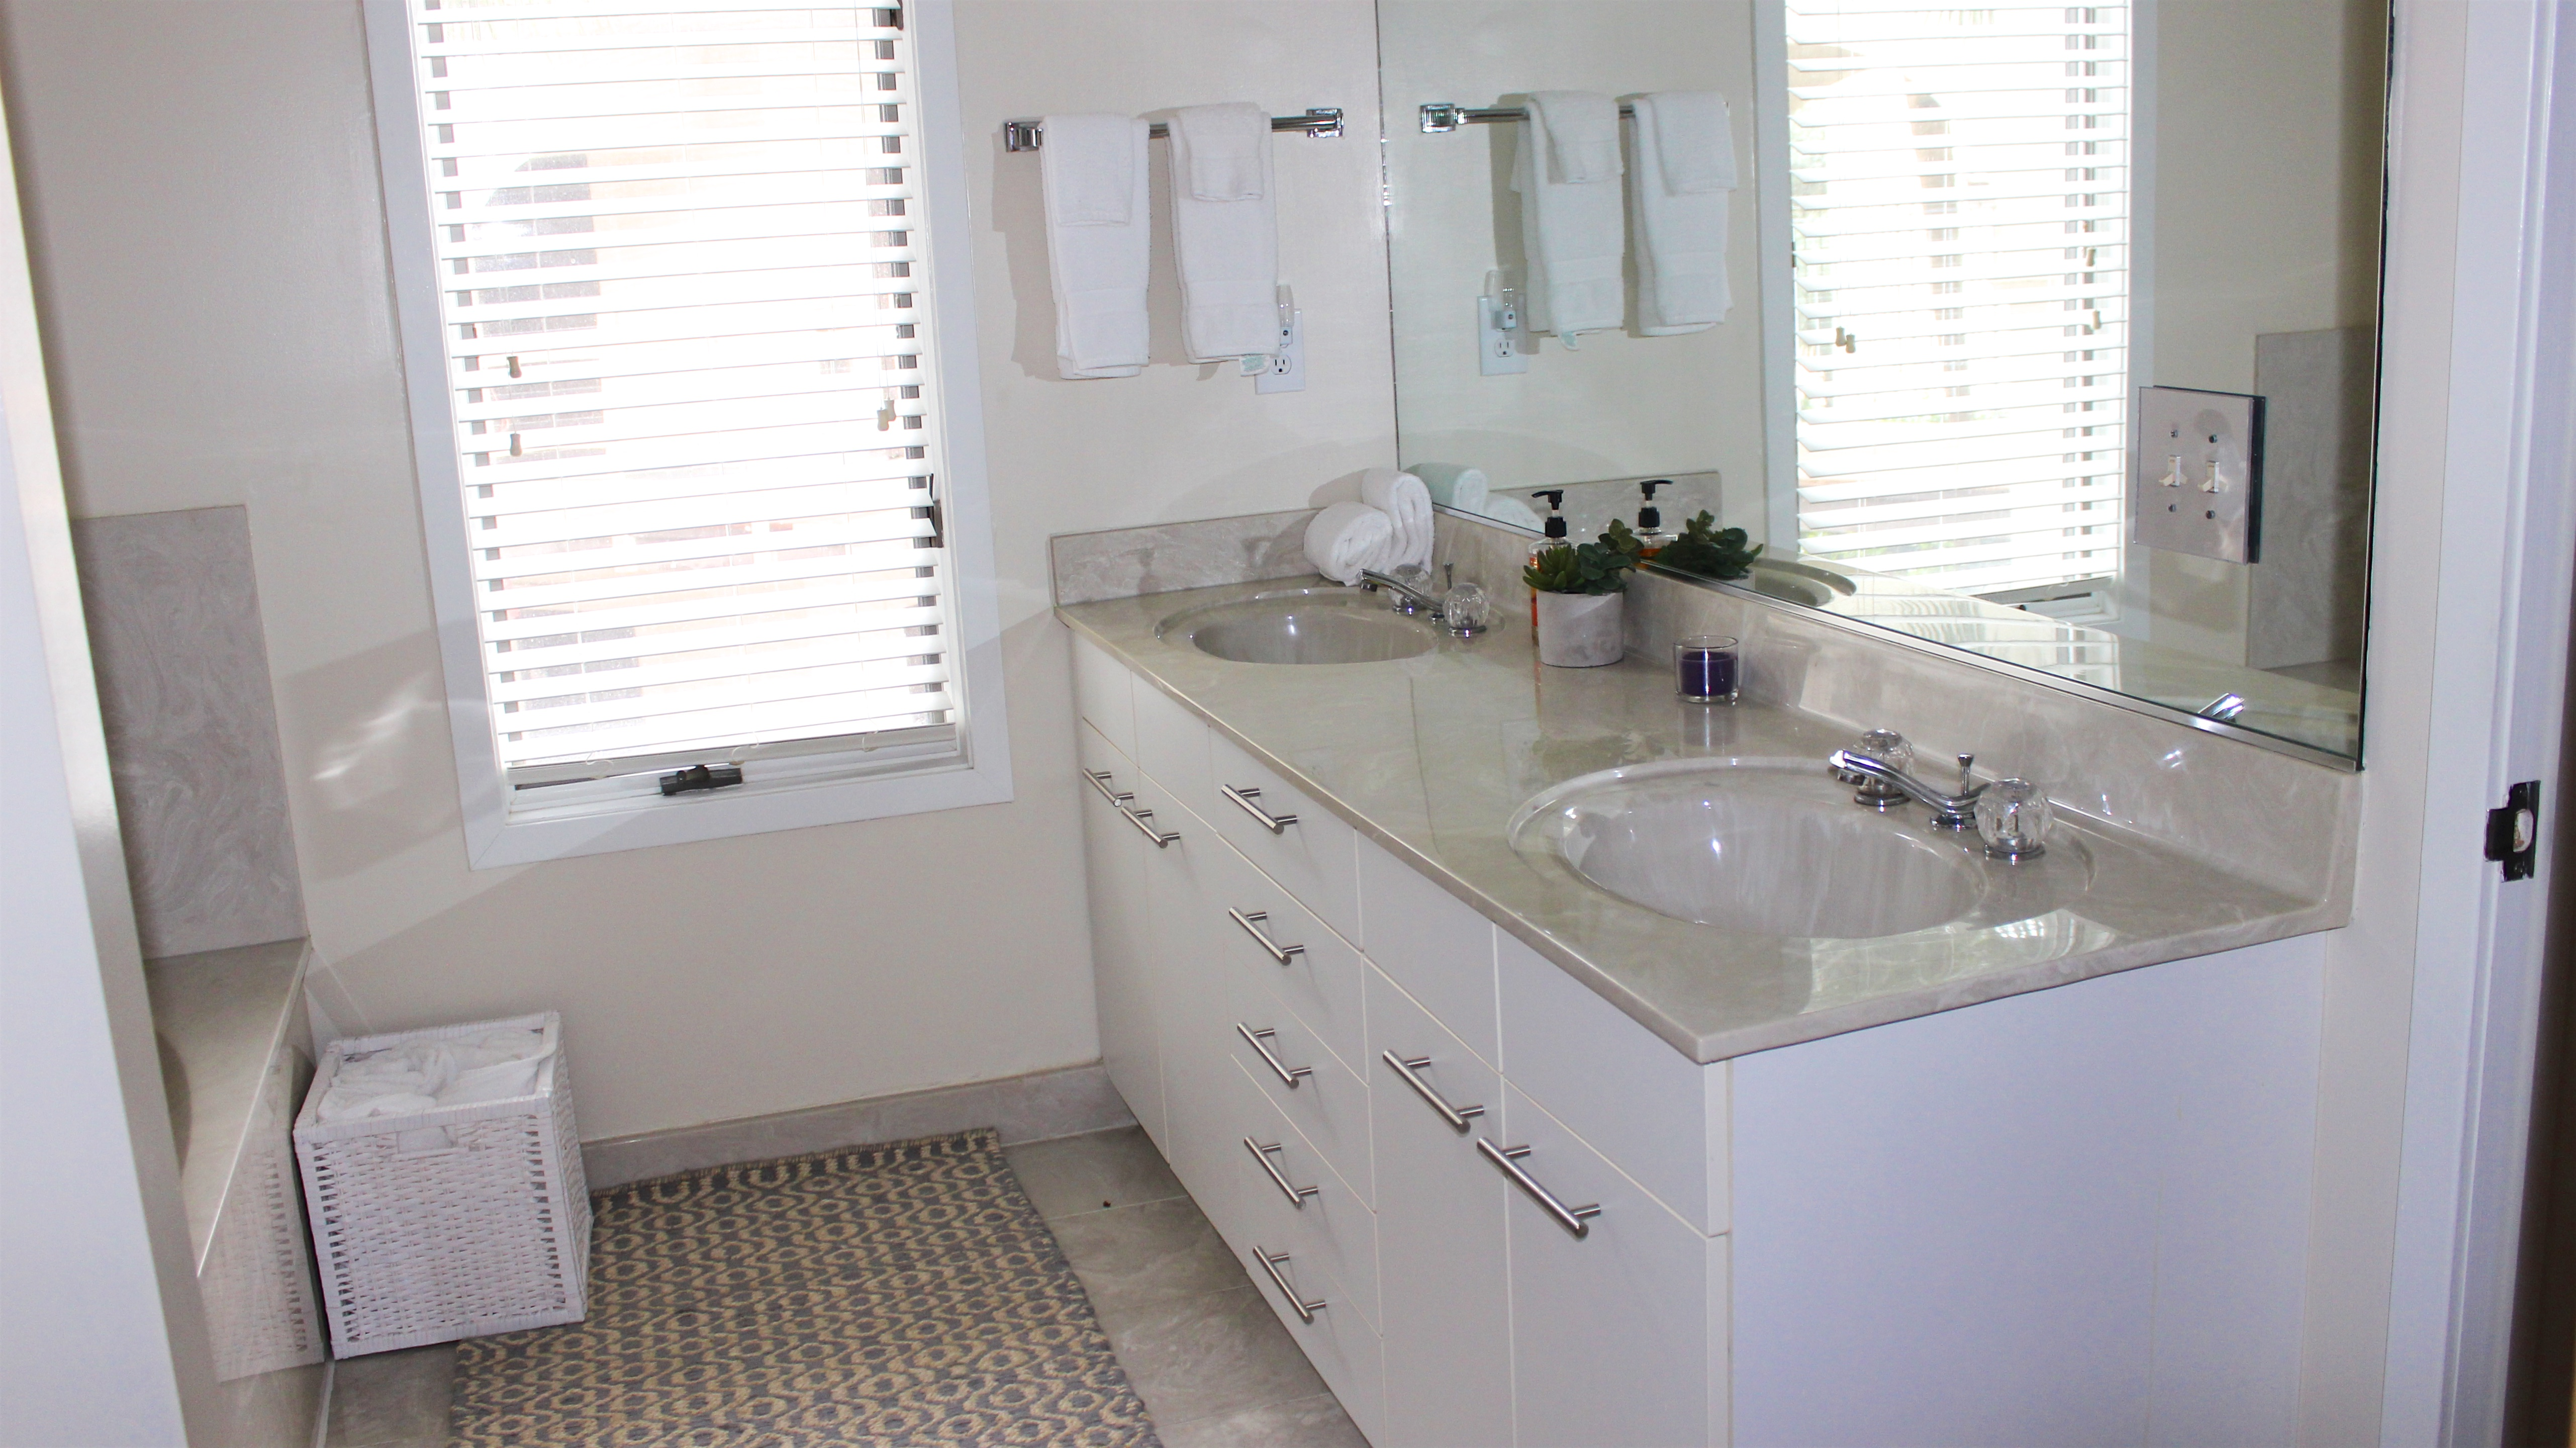 The master bath has a vanity with a double sink and stone counter.